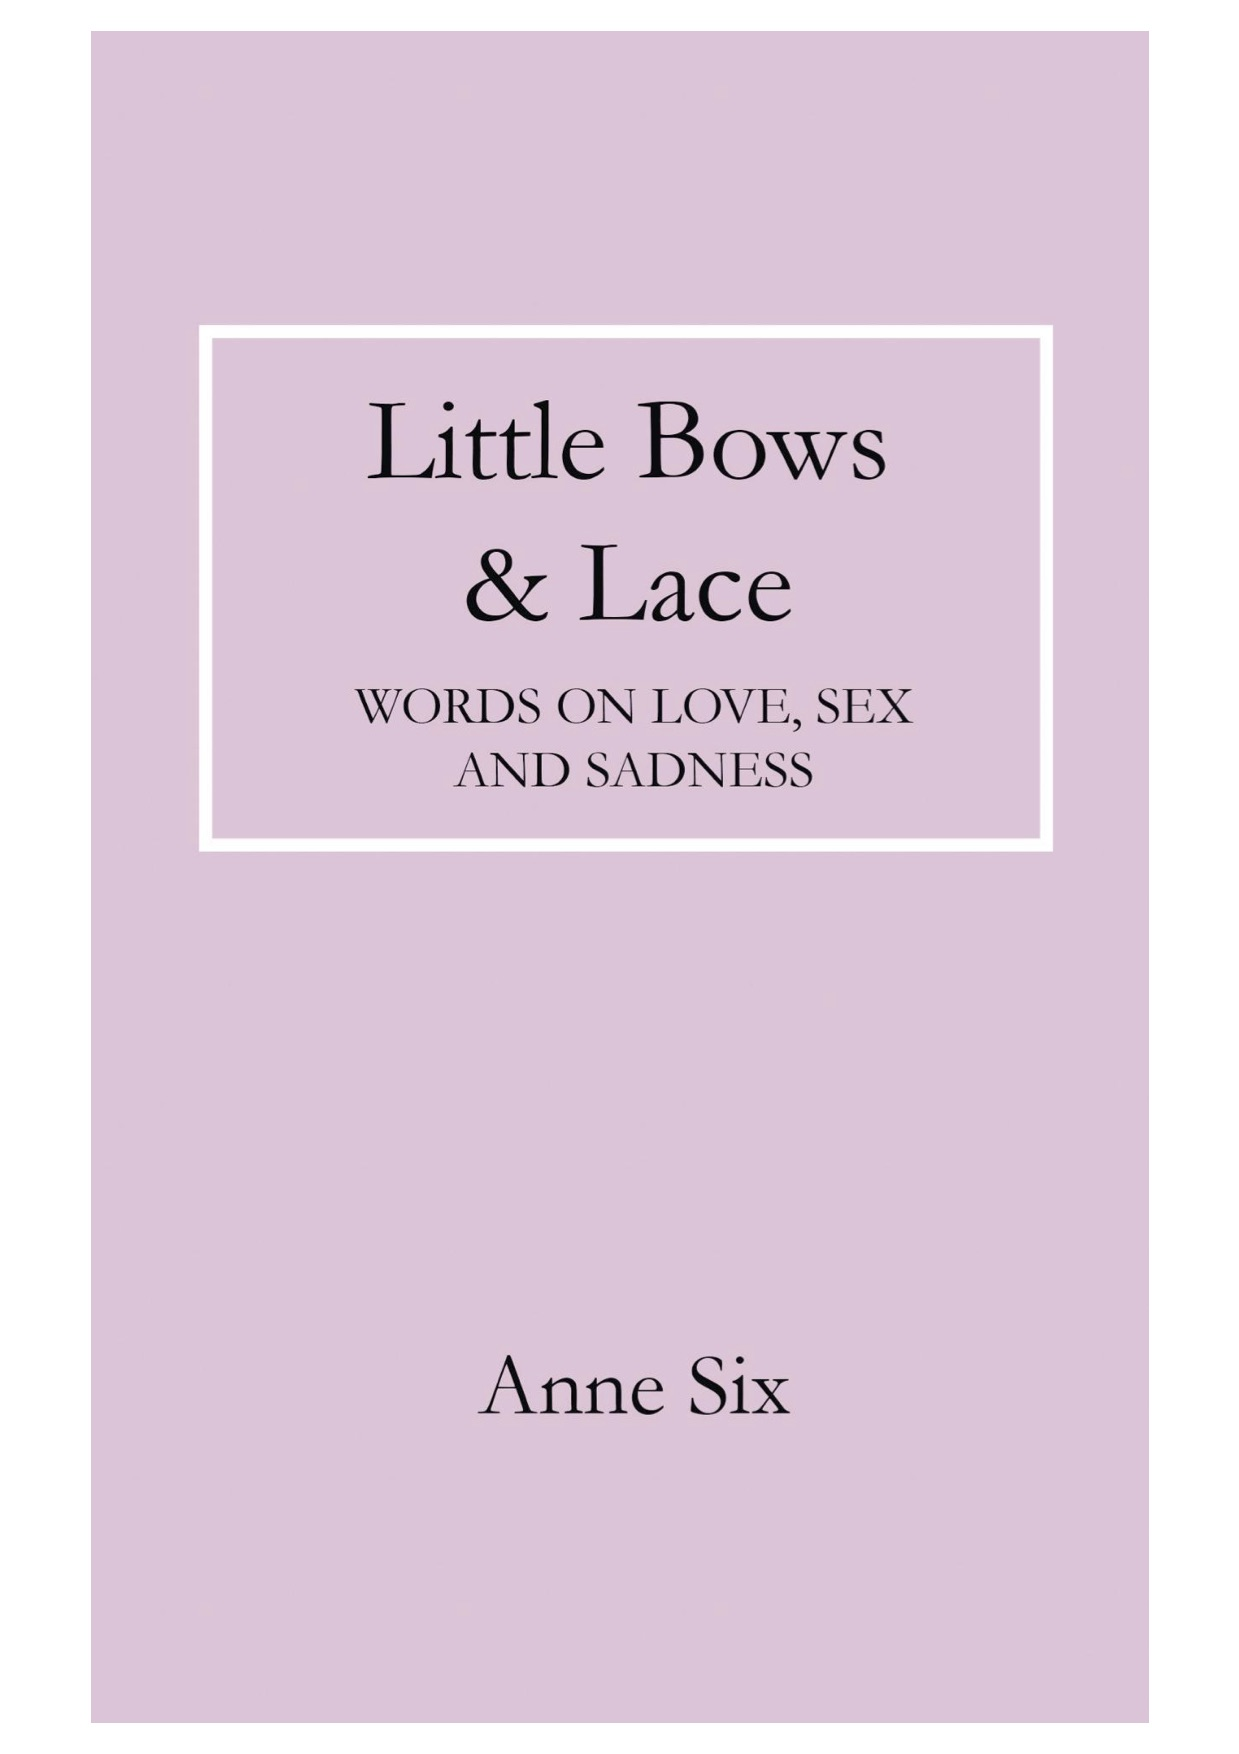 LITTLE BOWS & LACE: Review and Interview